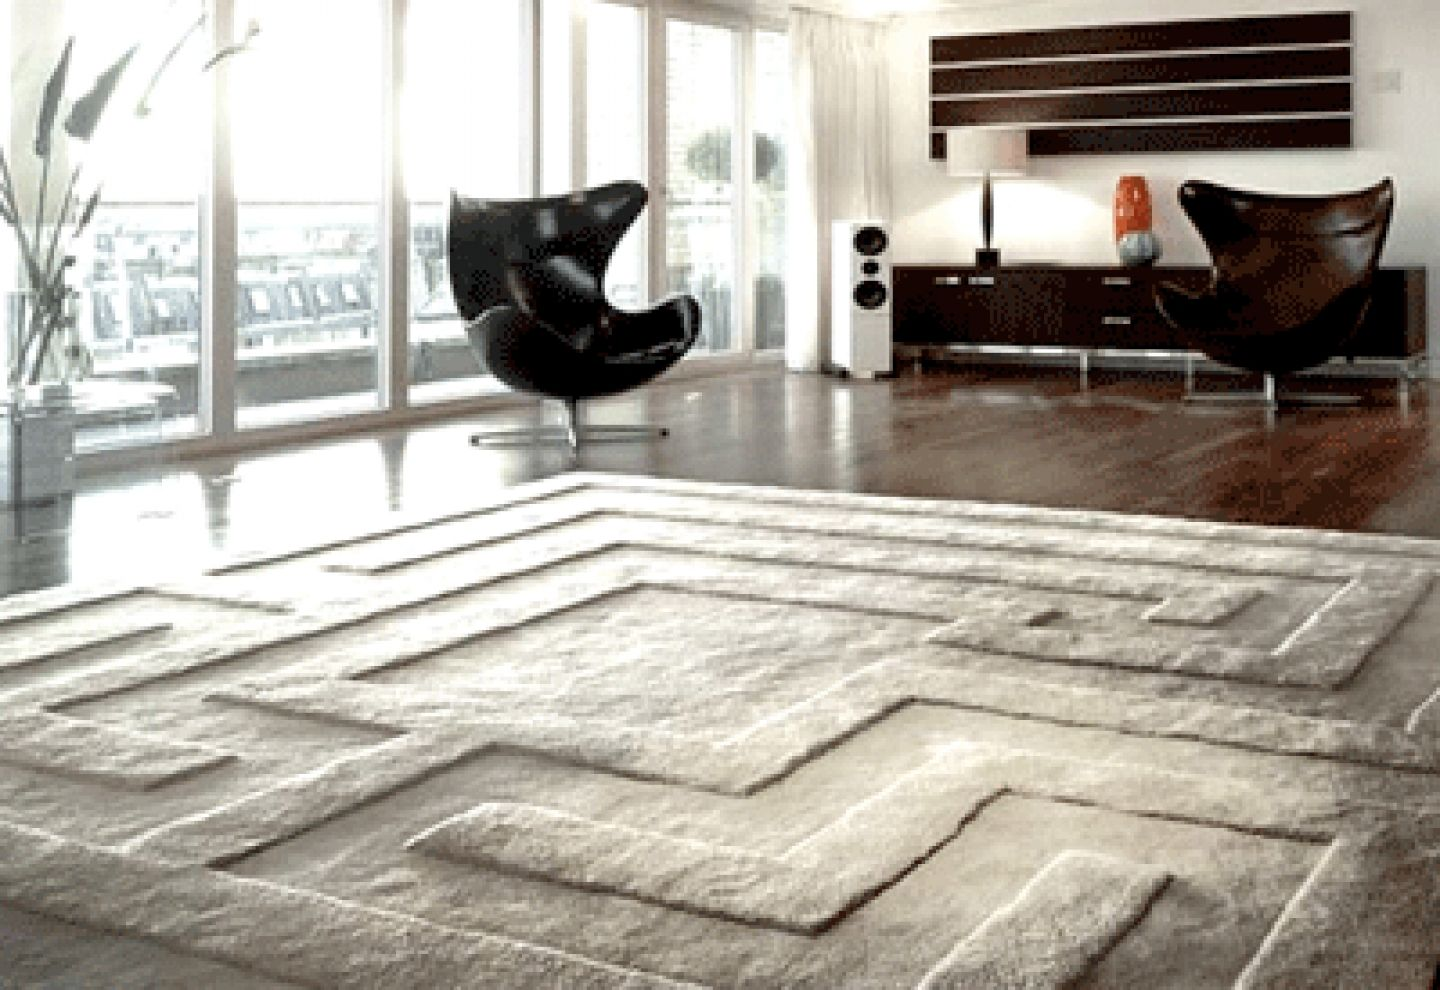 50 Modern Rugs For Contemporary Interiors In 2020 Modern Rugs